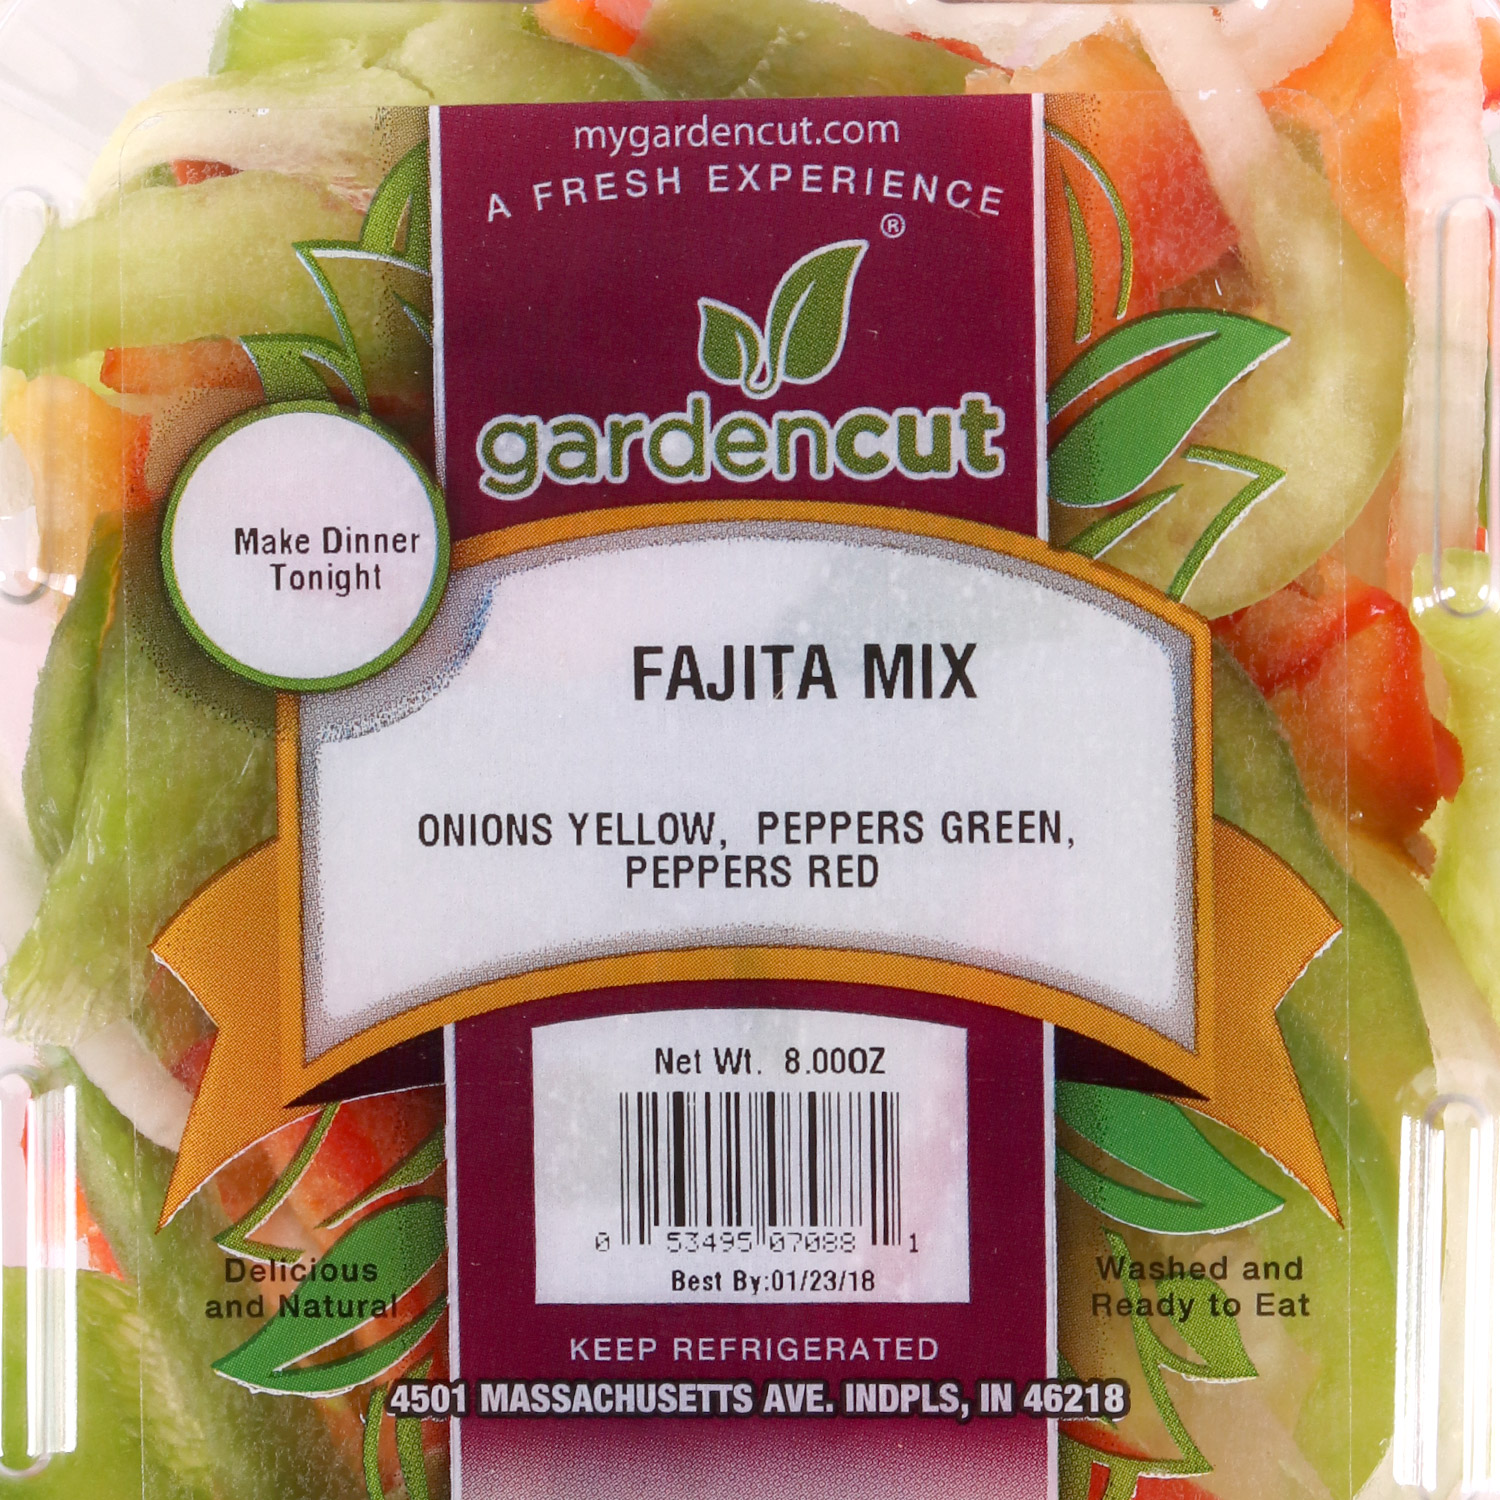 Fajita Mix